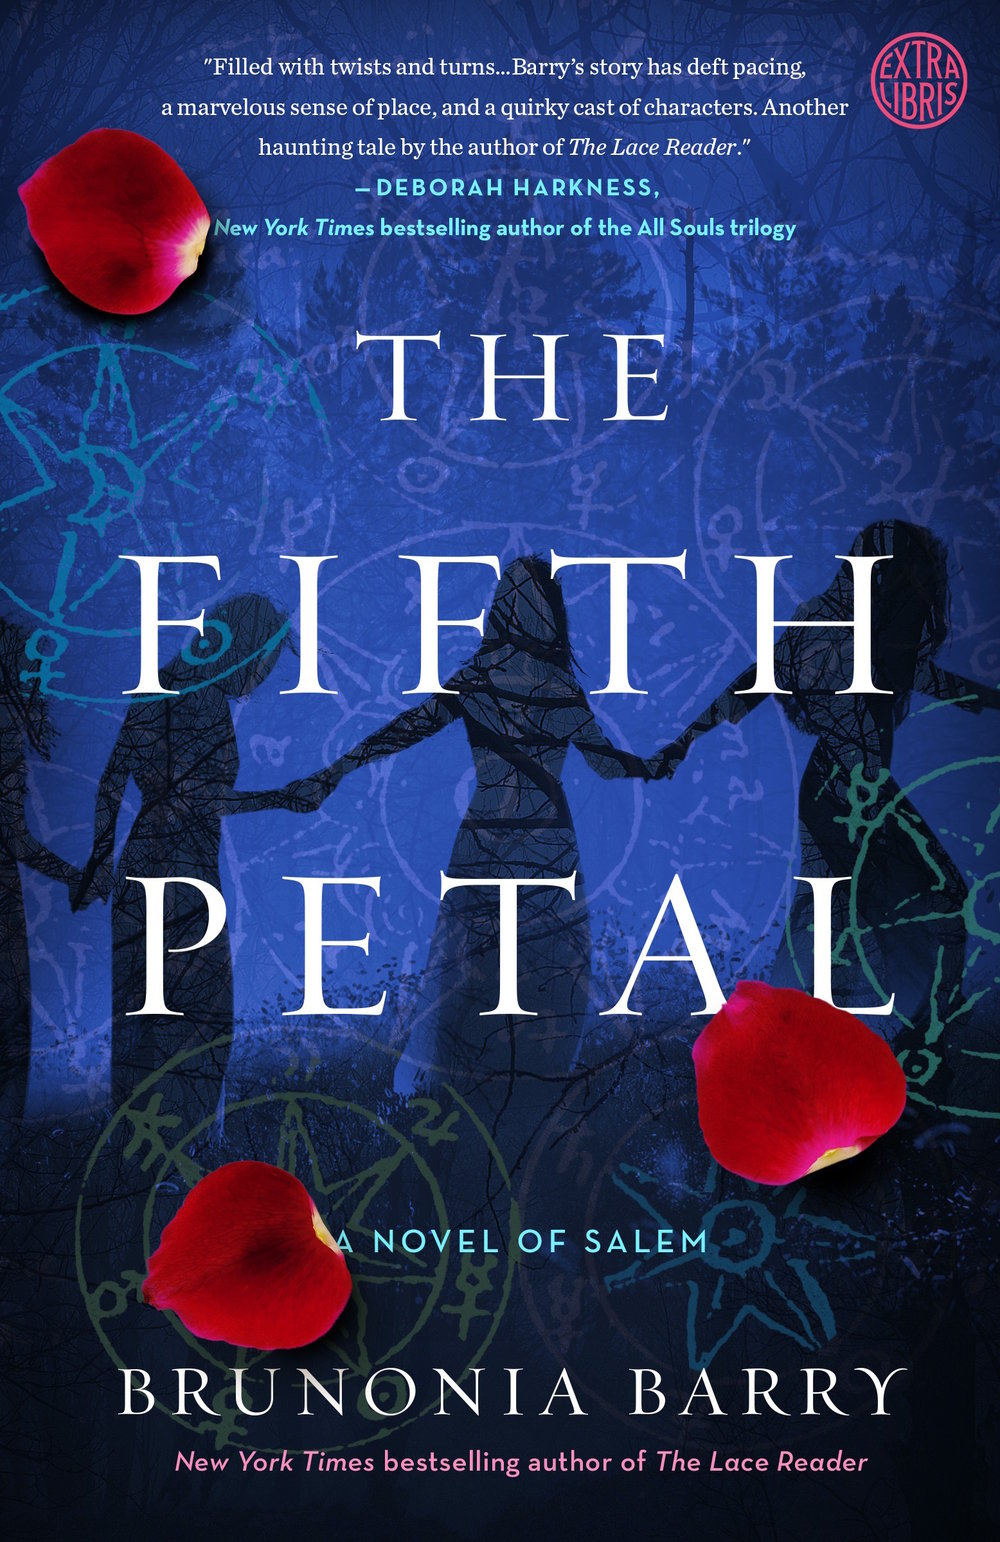 FIFTH PETAL PB cover.jpg